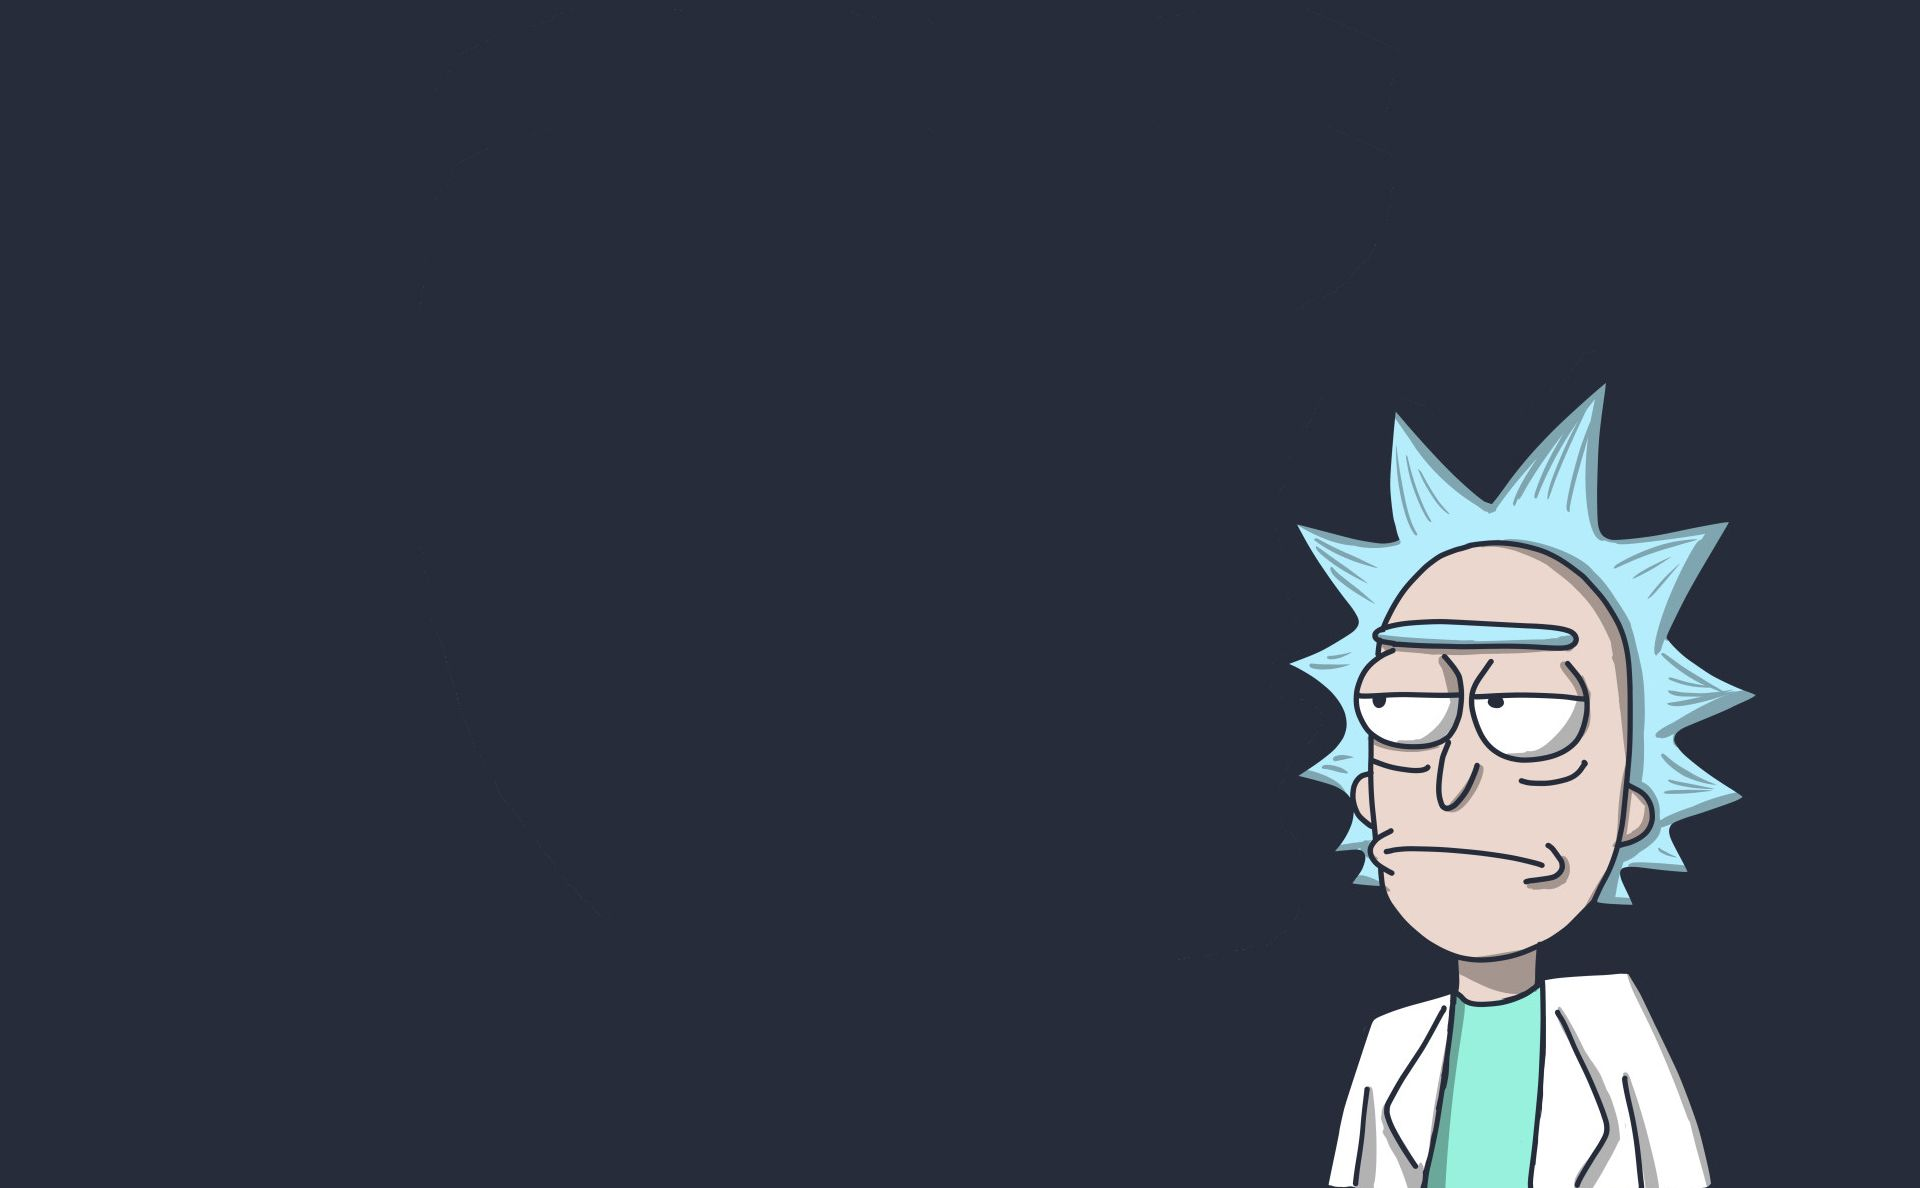 Wallpapers For Laptop Rick And Morty Computer Wallpaper Desktop Wallpapers Desktop Wallpaper Art Cartoon Wallpaper